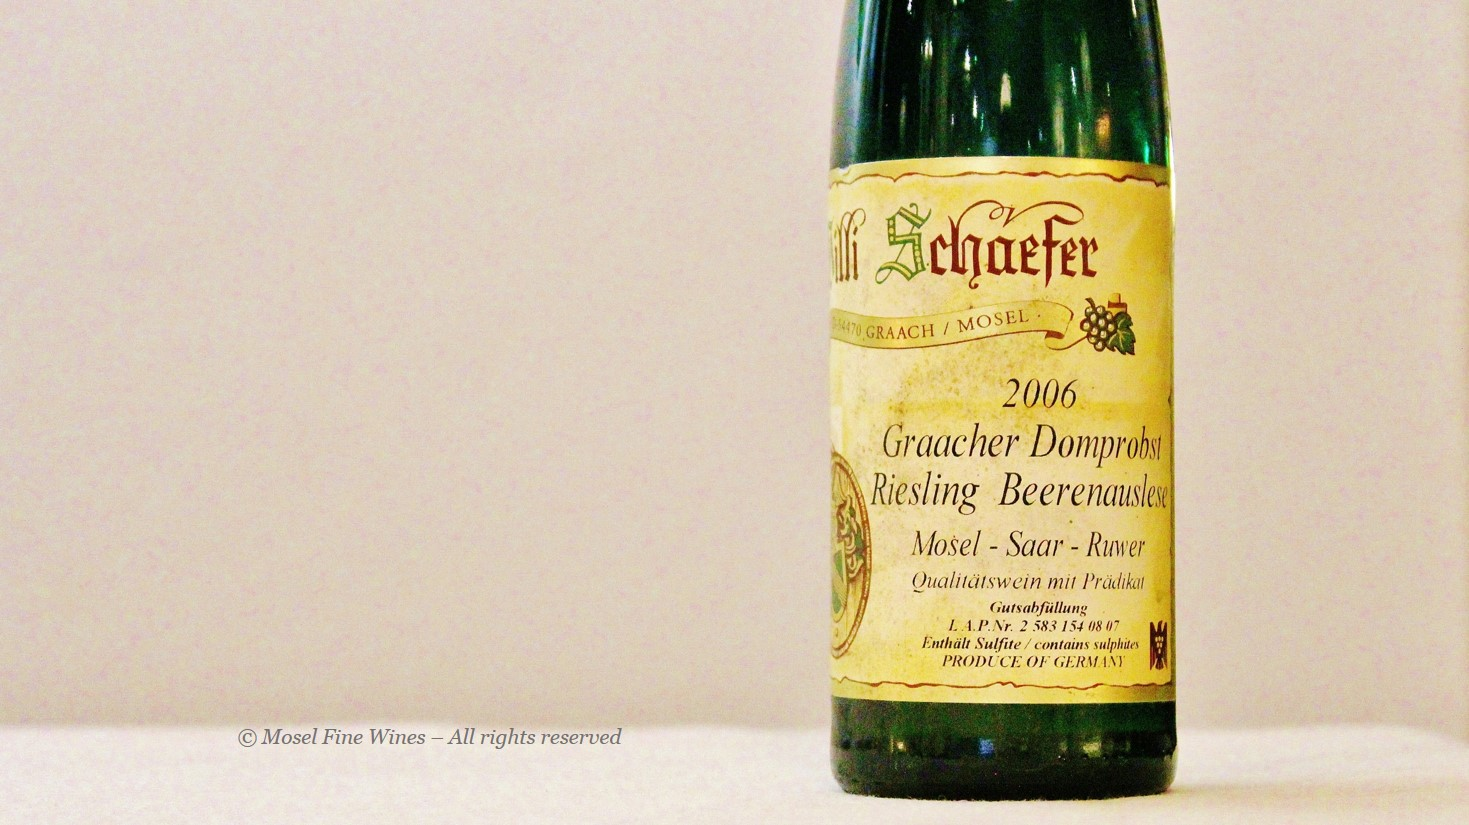 Willi Schaefer | Graacher Domprobst | Label | Picture | Photo